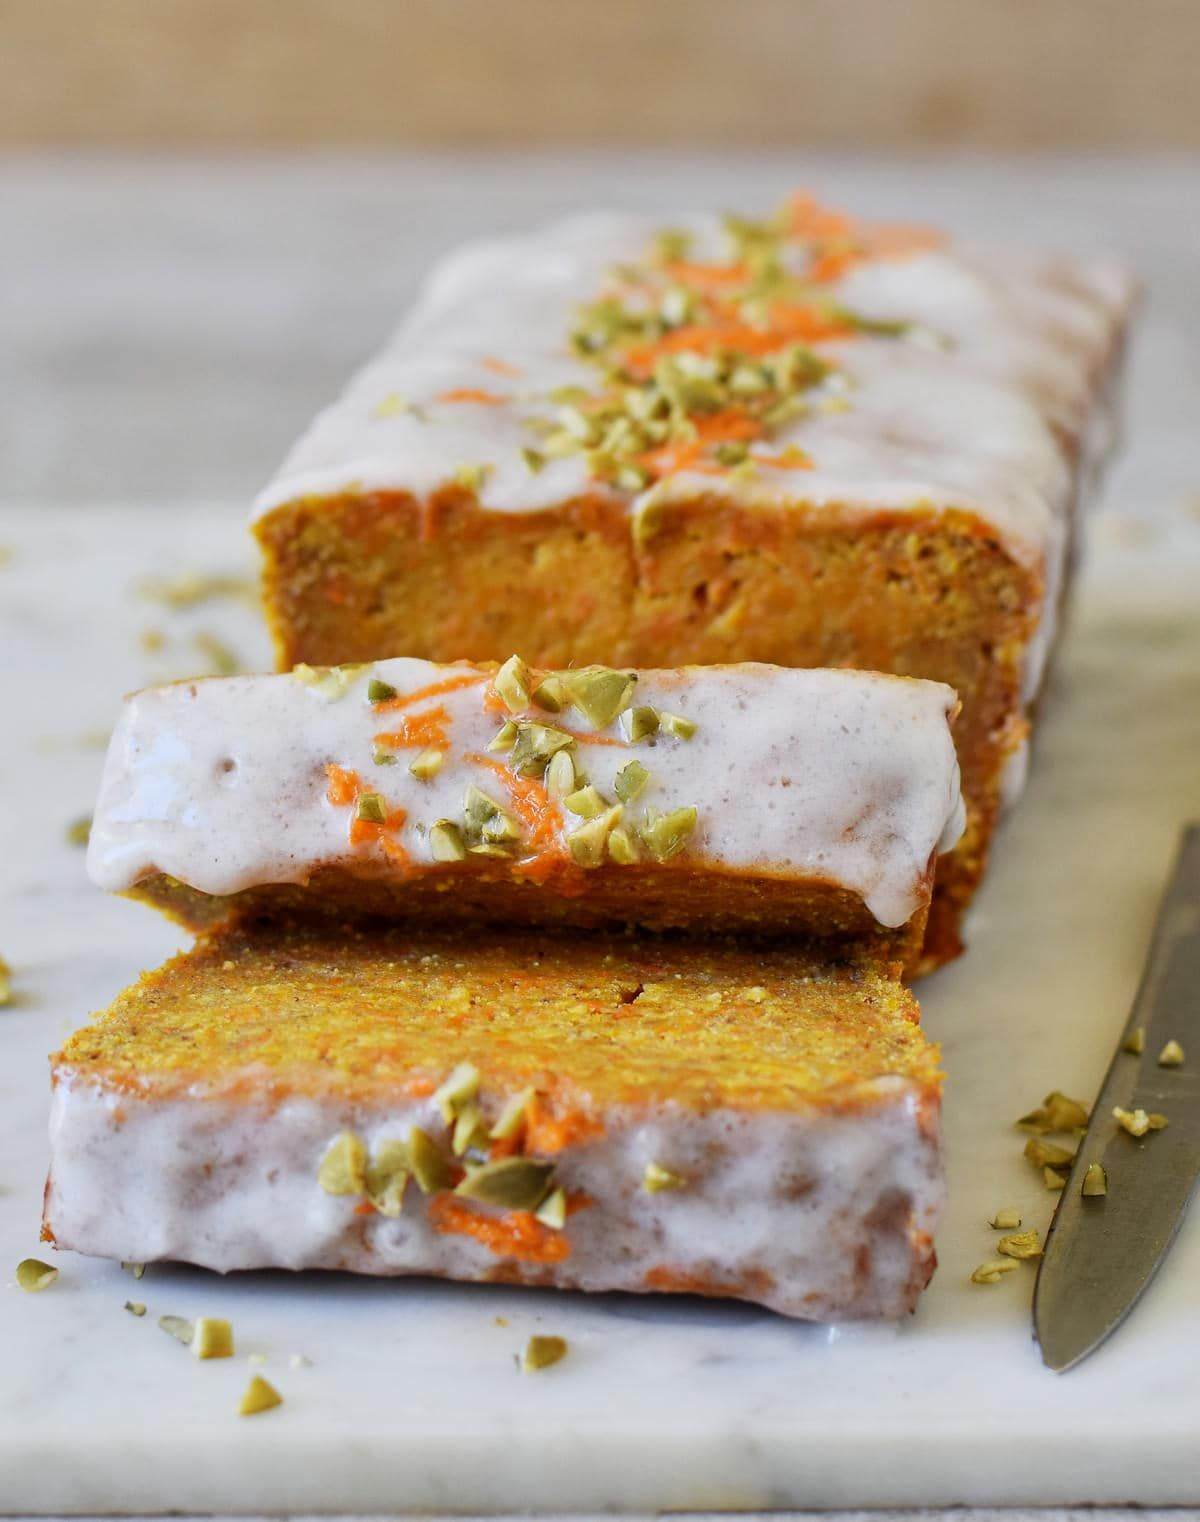 Delicious and moist vegan carrot cake this simple recipe